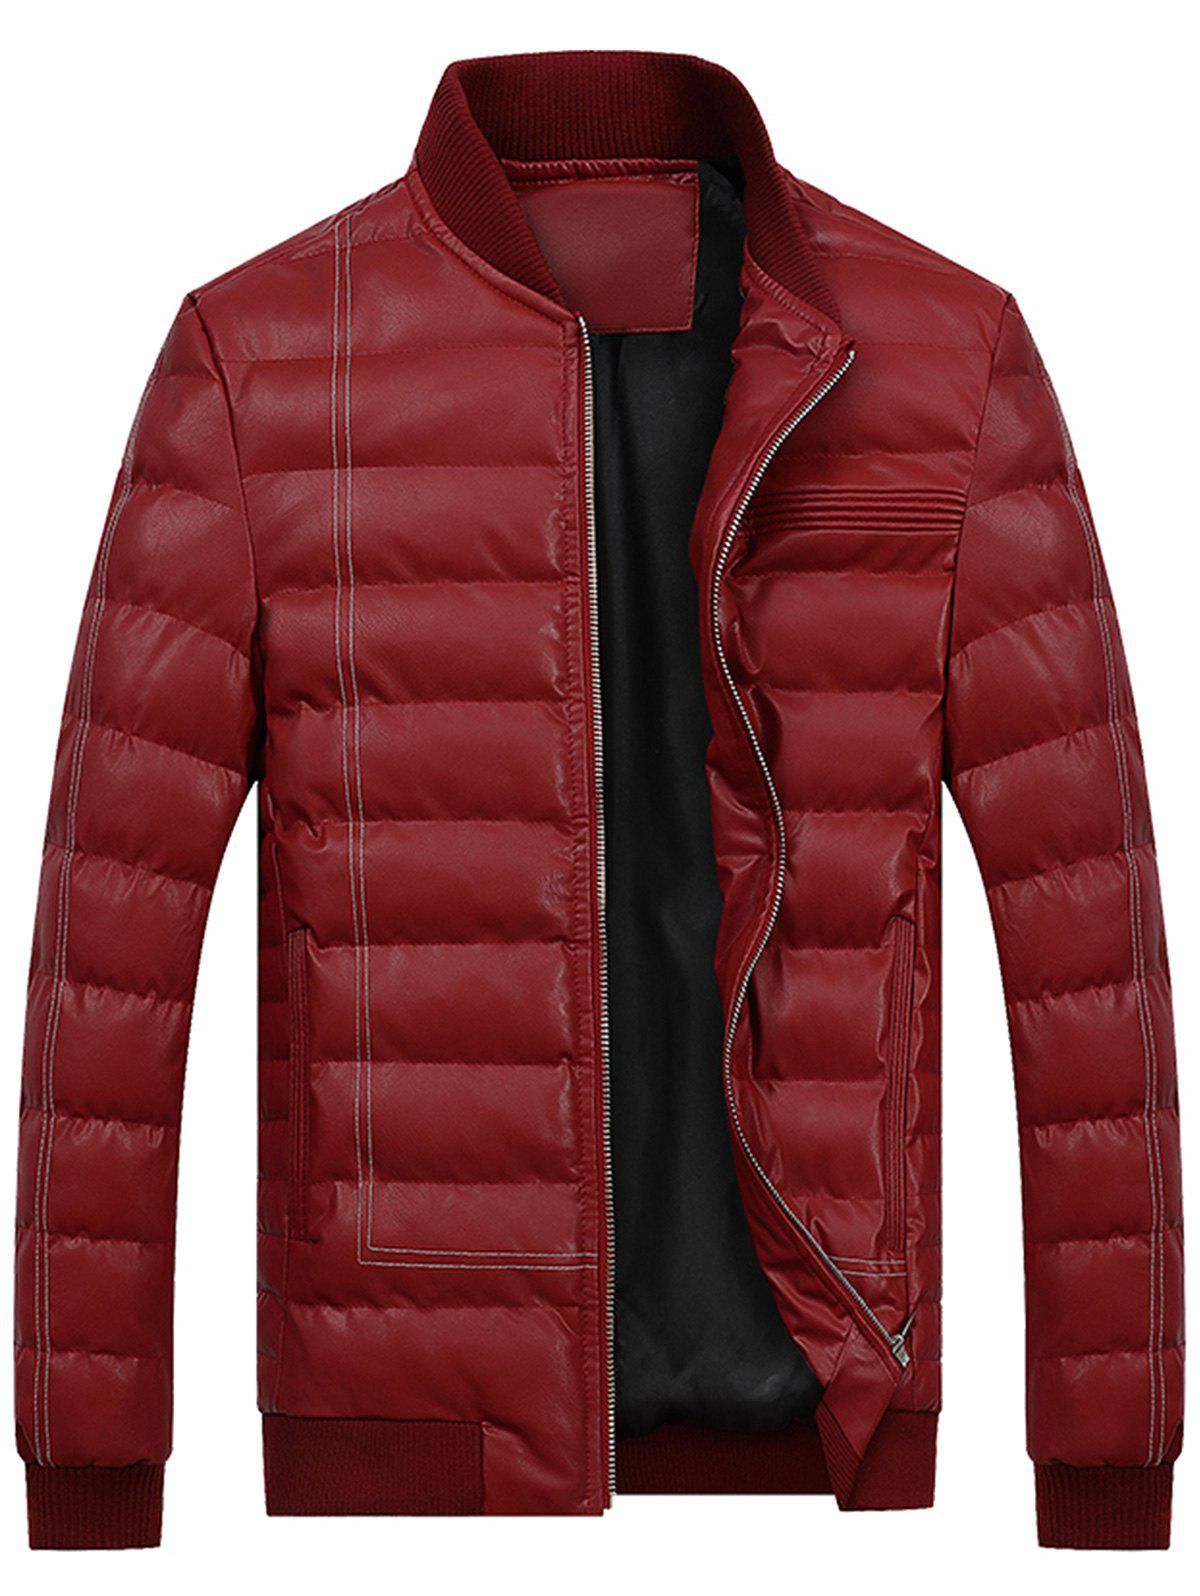 Zip Up Suture PU Leather Padded Jacket - WINE RED 3XL